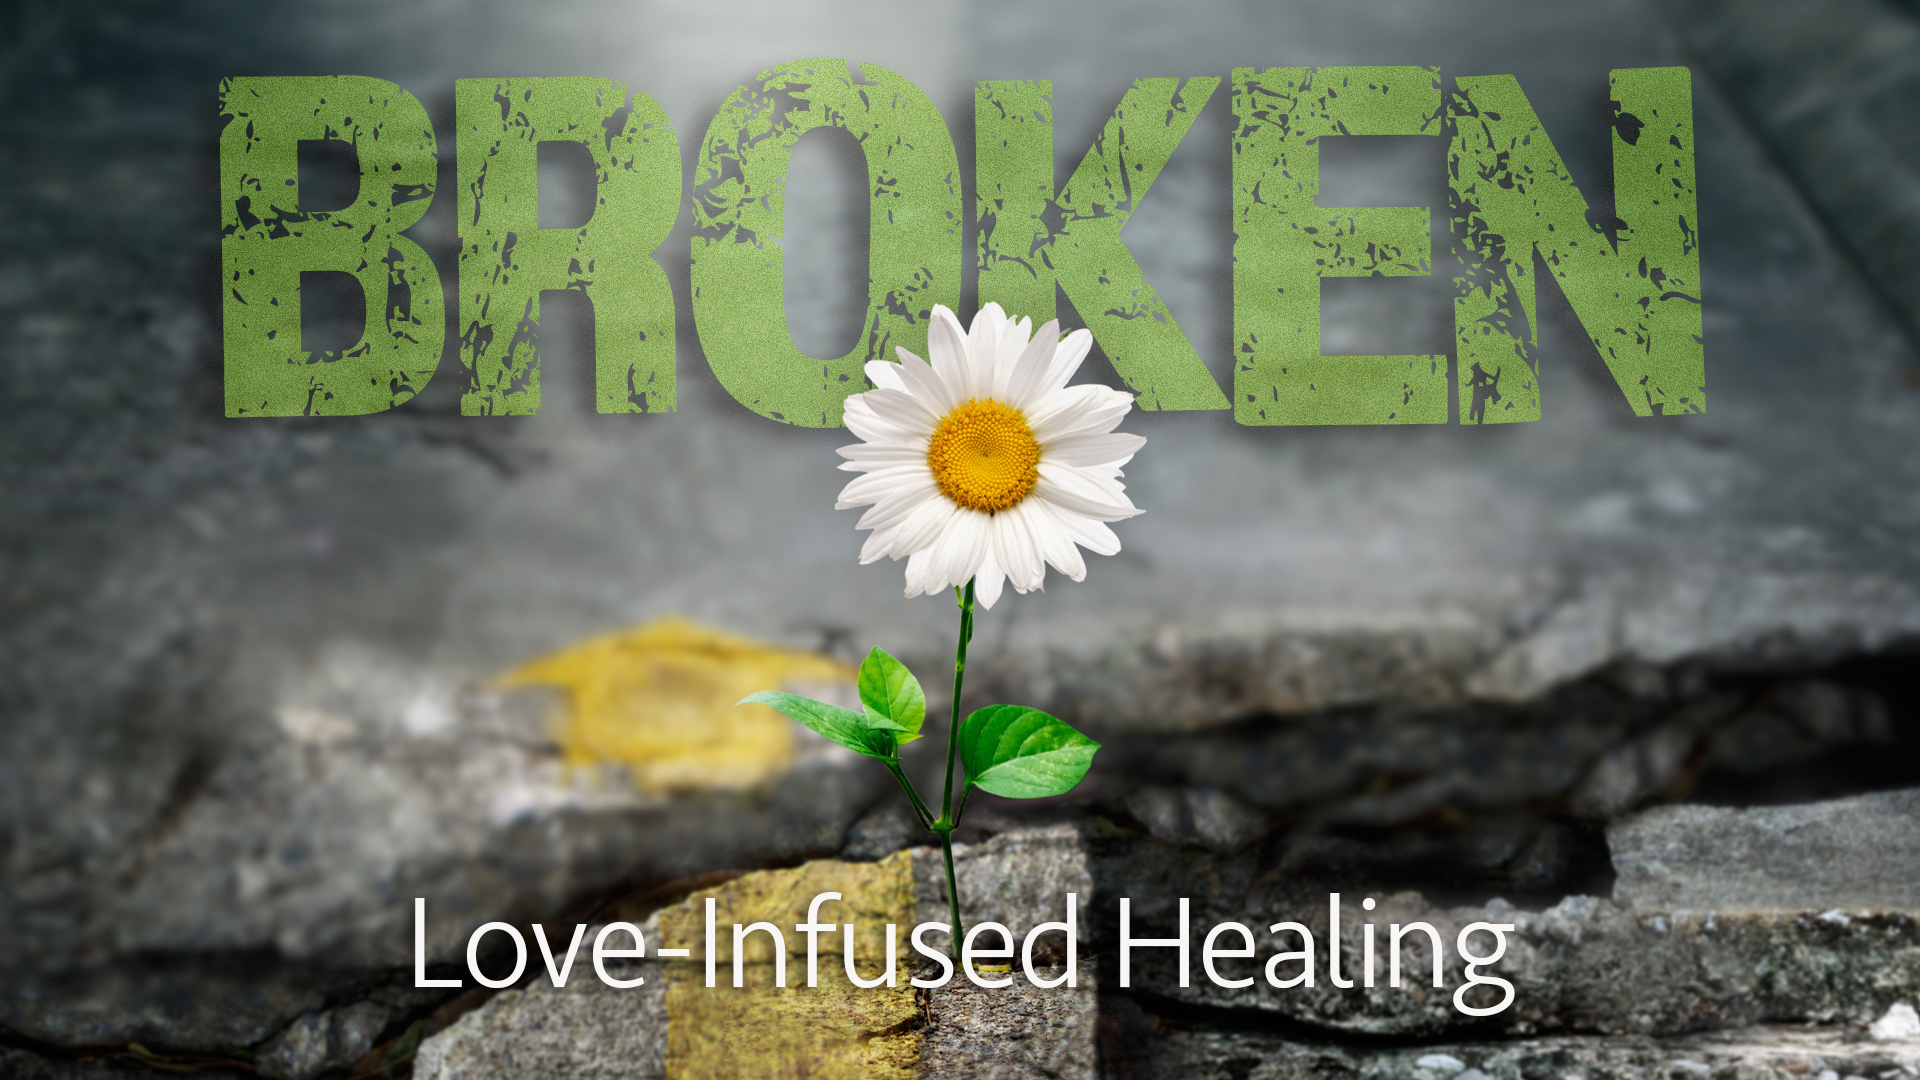 Love-Infused Healing